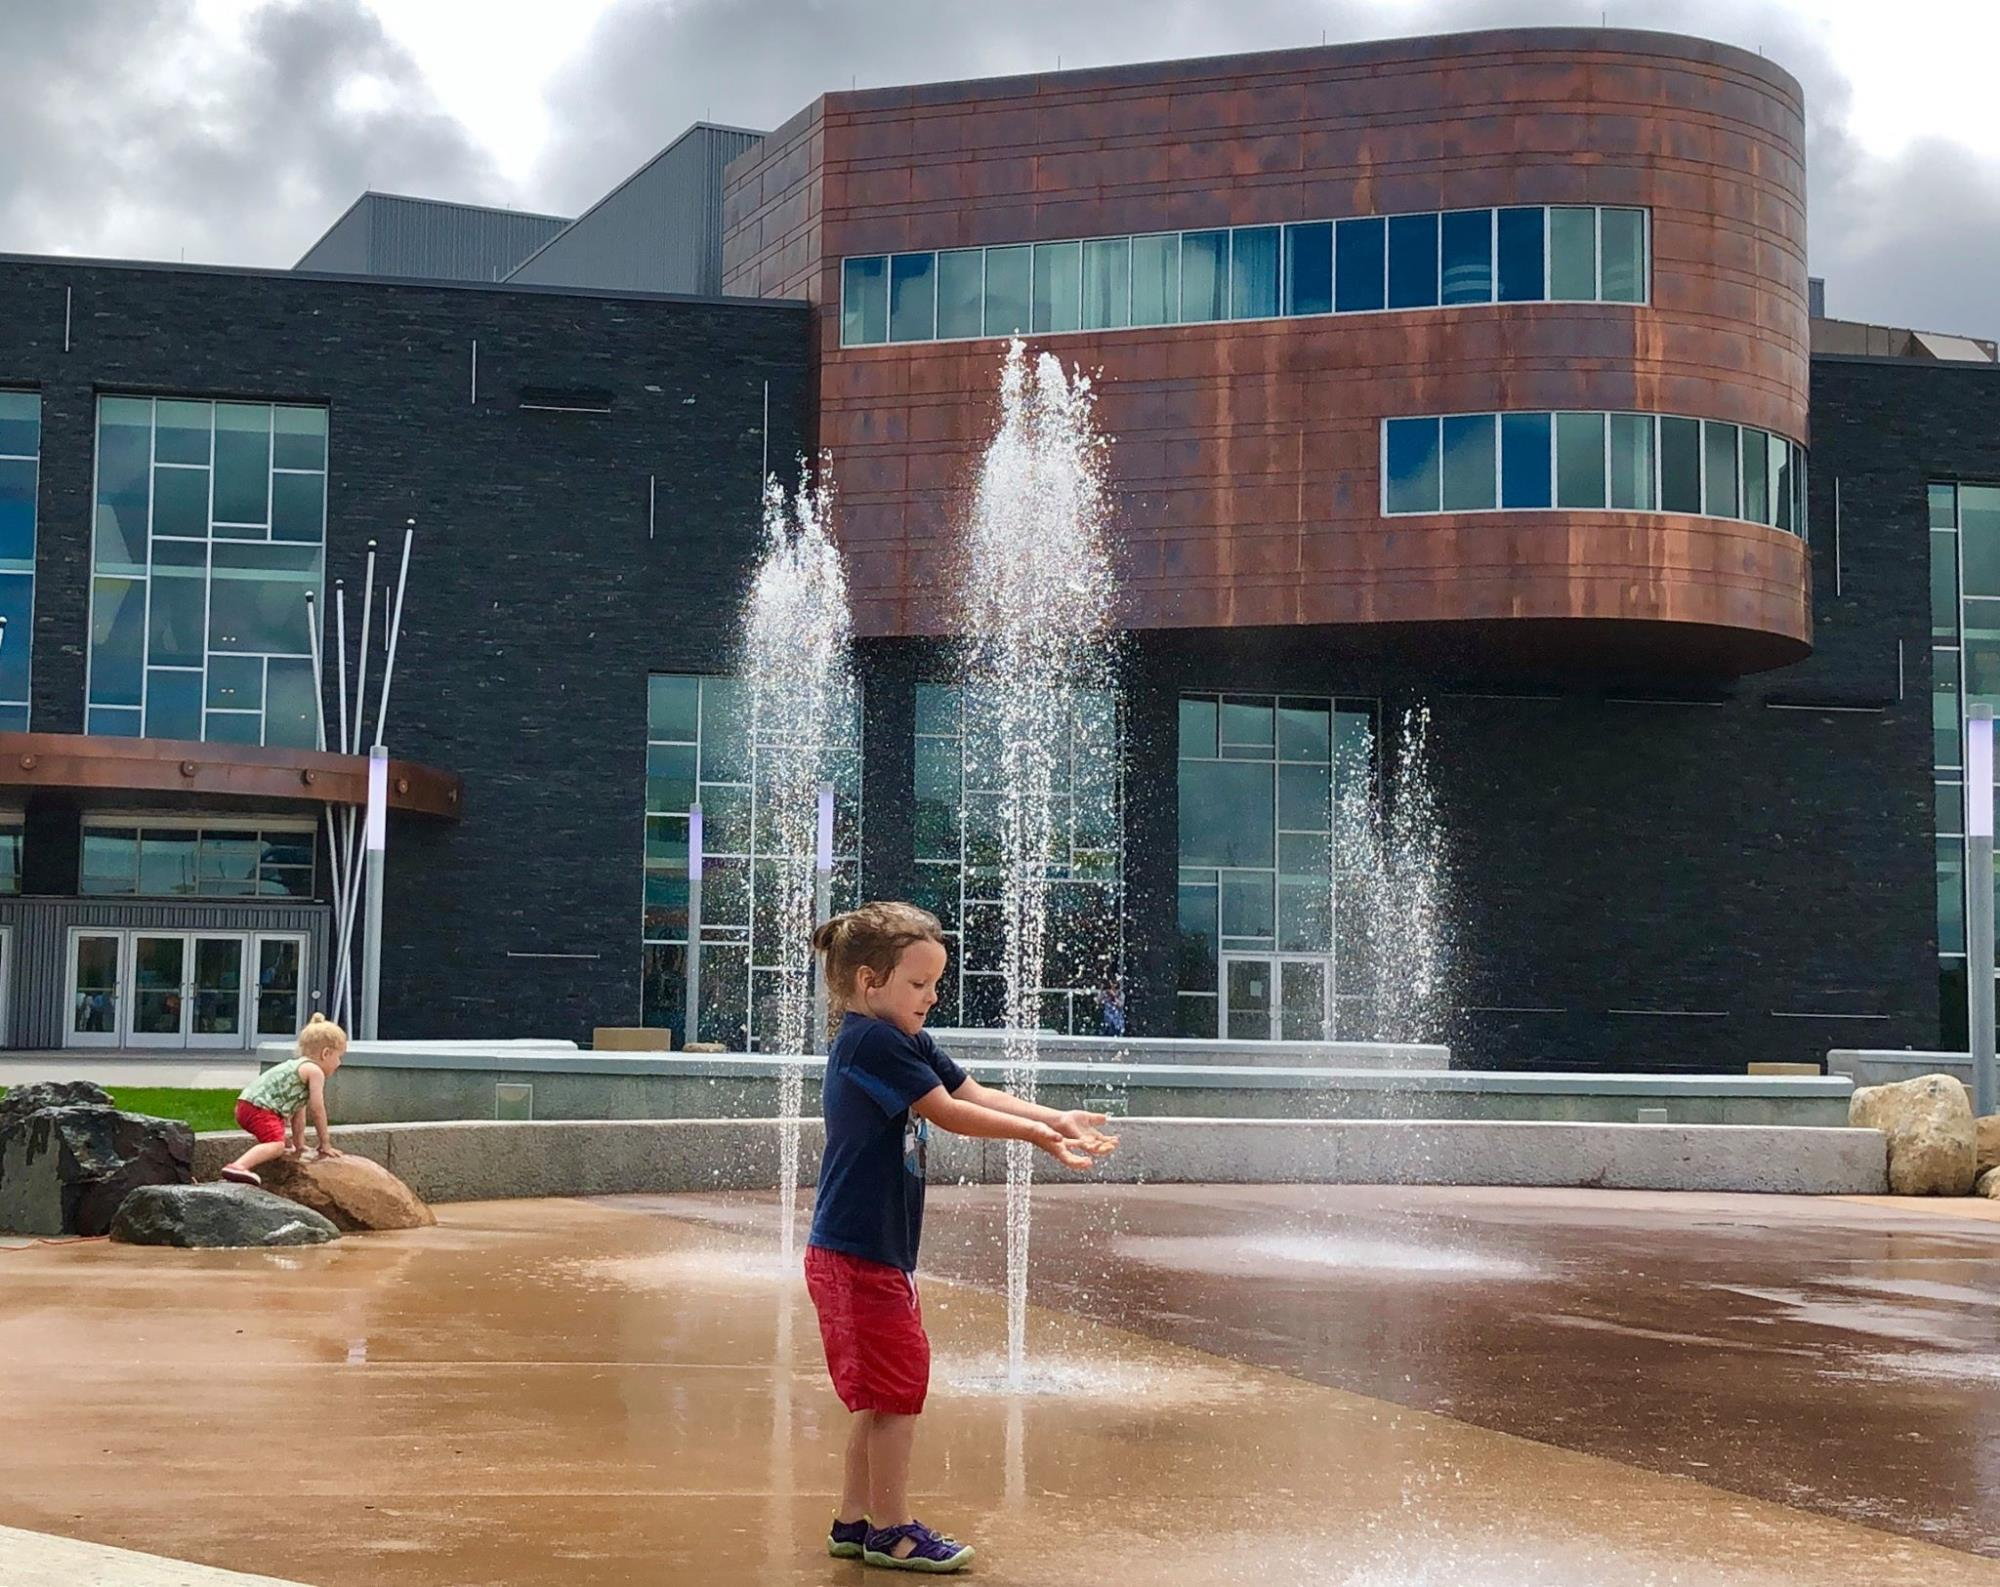 Enjoying The New Water Feature - Haymarket Plaza